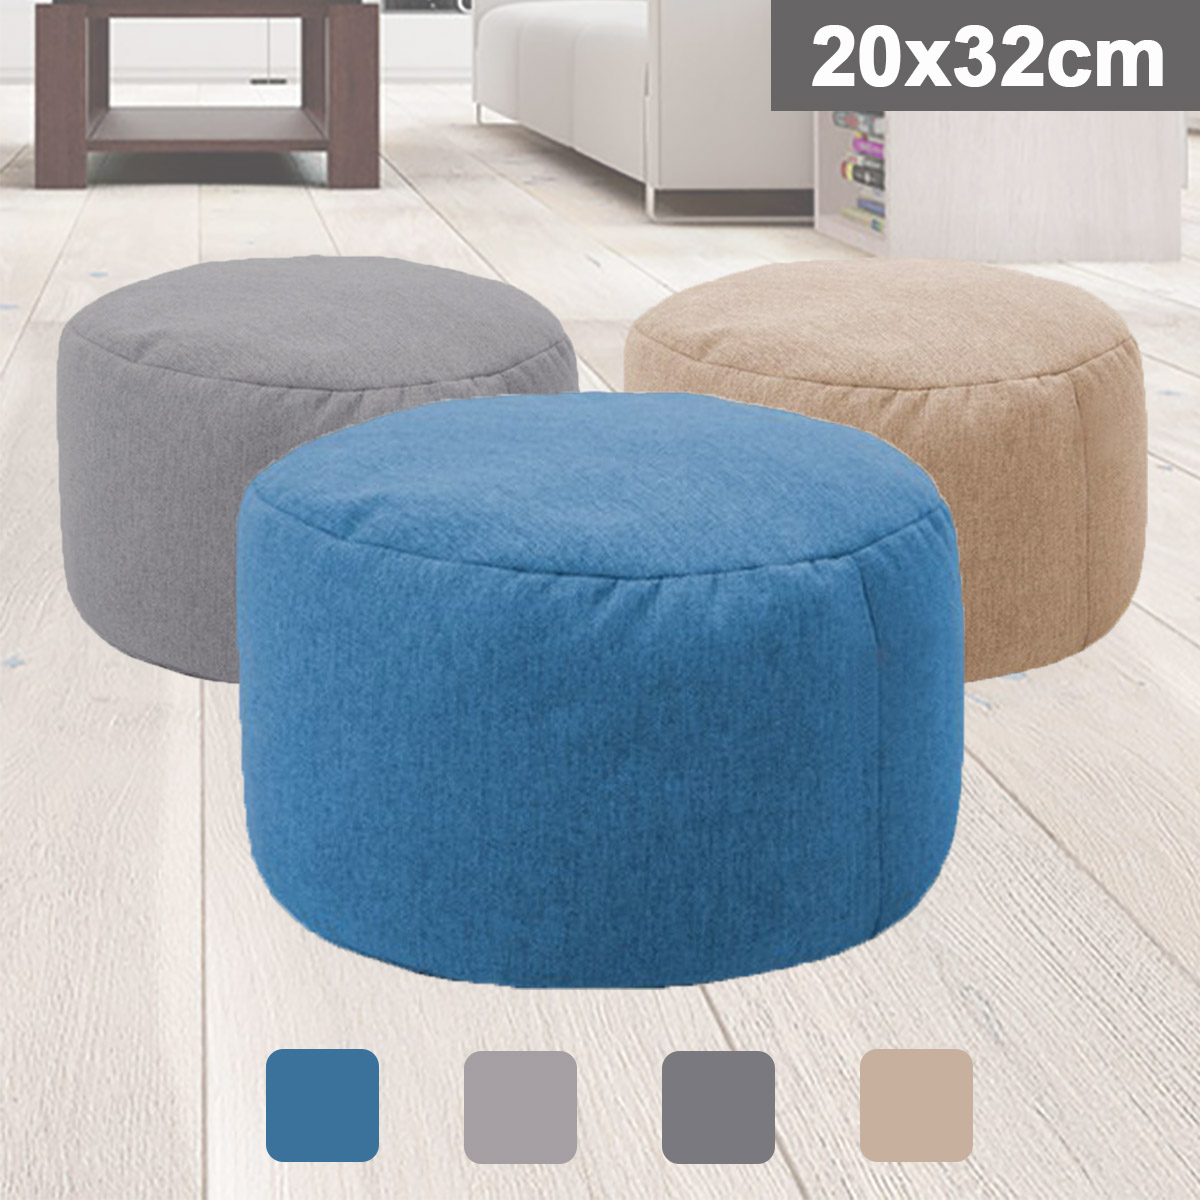 Details About Bean Bag Footstools Foot Rest Stool Pouffe Ottoman Living Room Furniture Seat